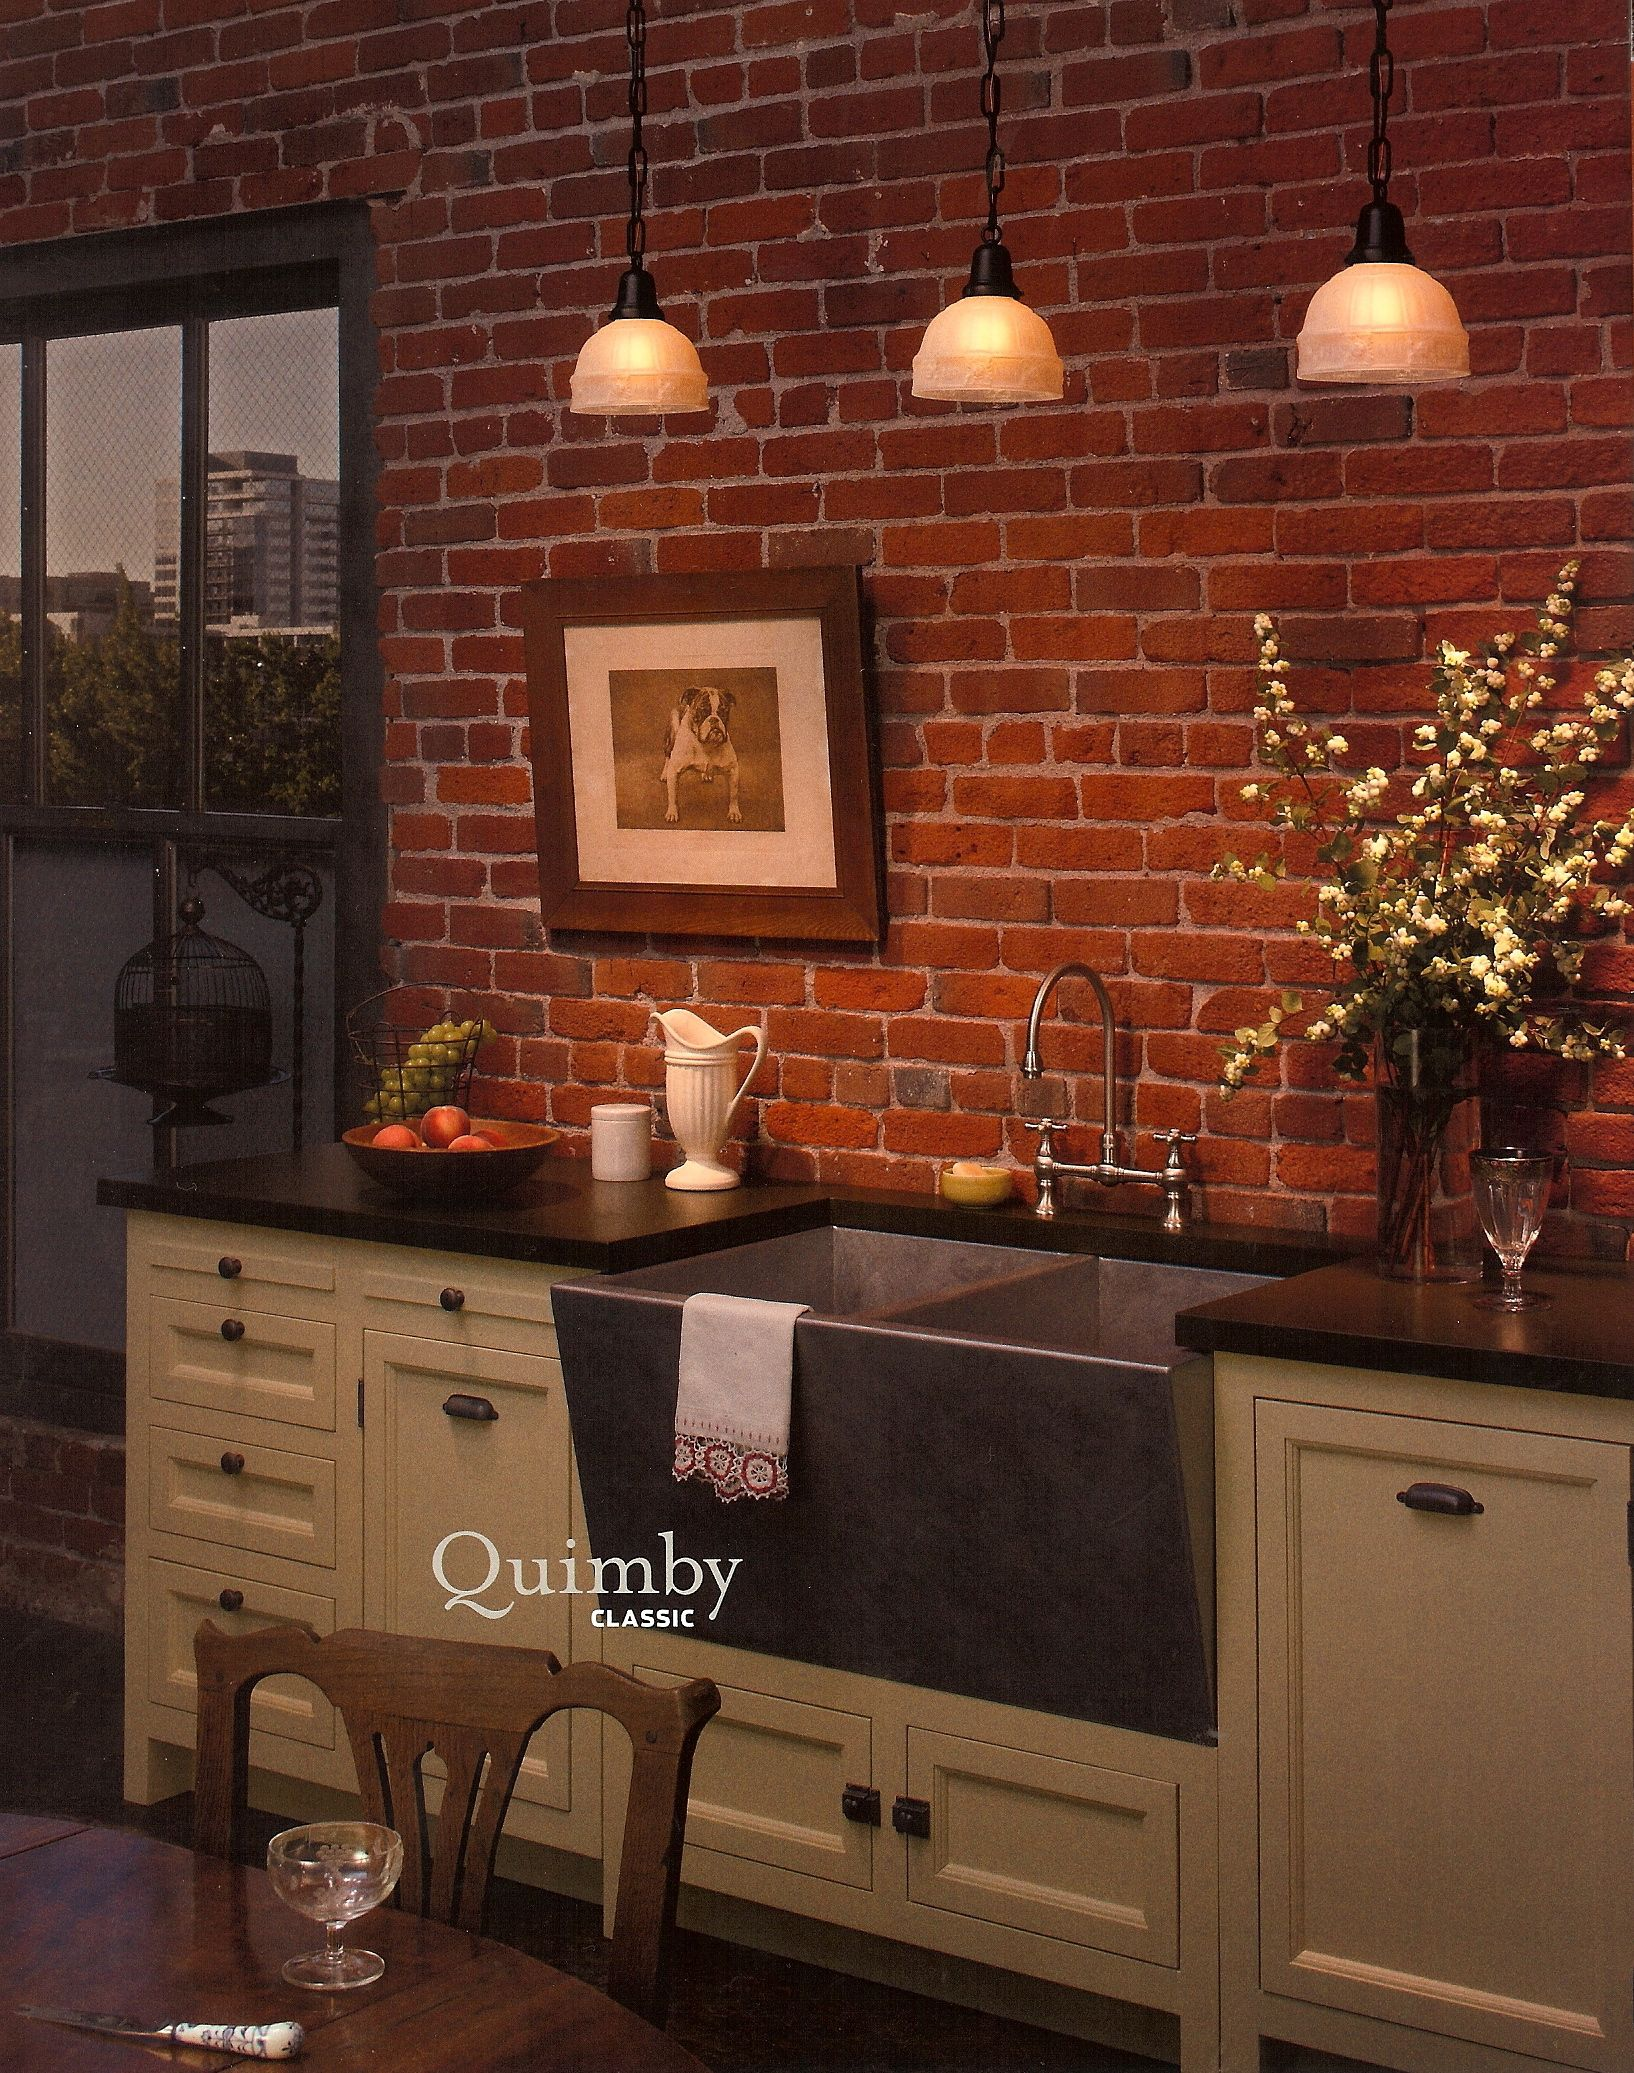 Kitchen Brick Wall Kitchen Inspiration Exposed Brick Kitchen Exposed Brick